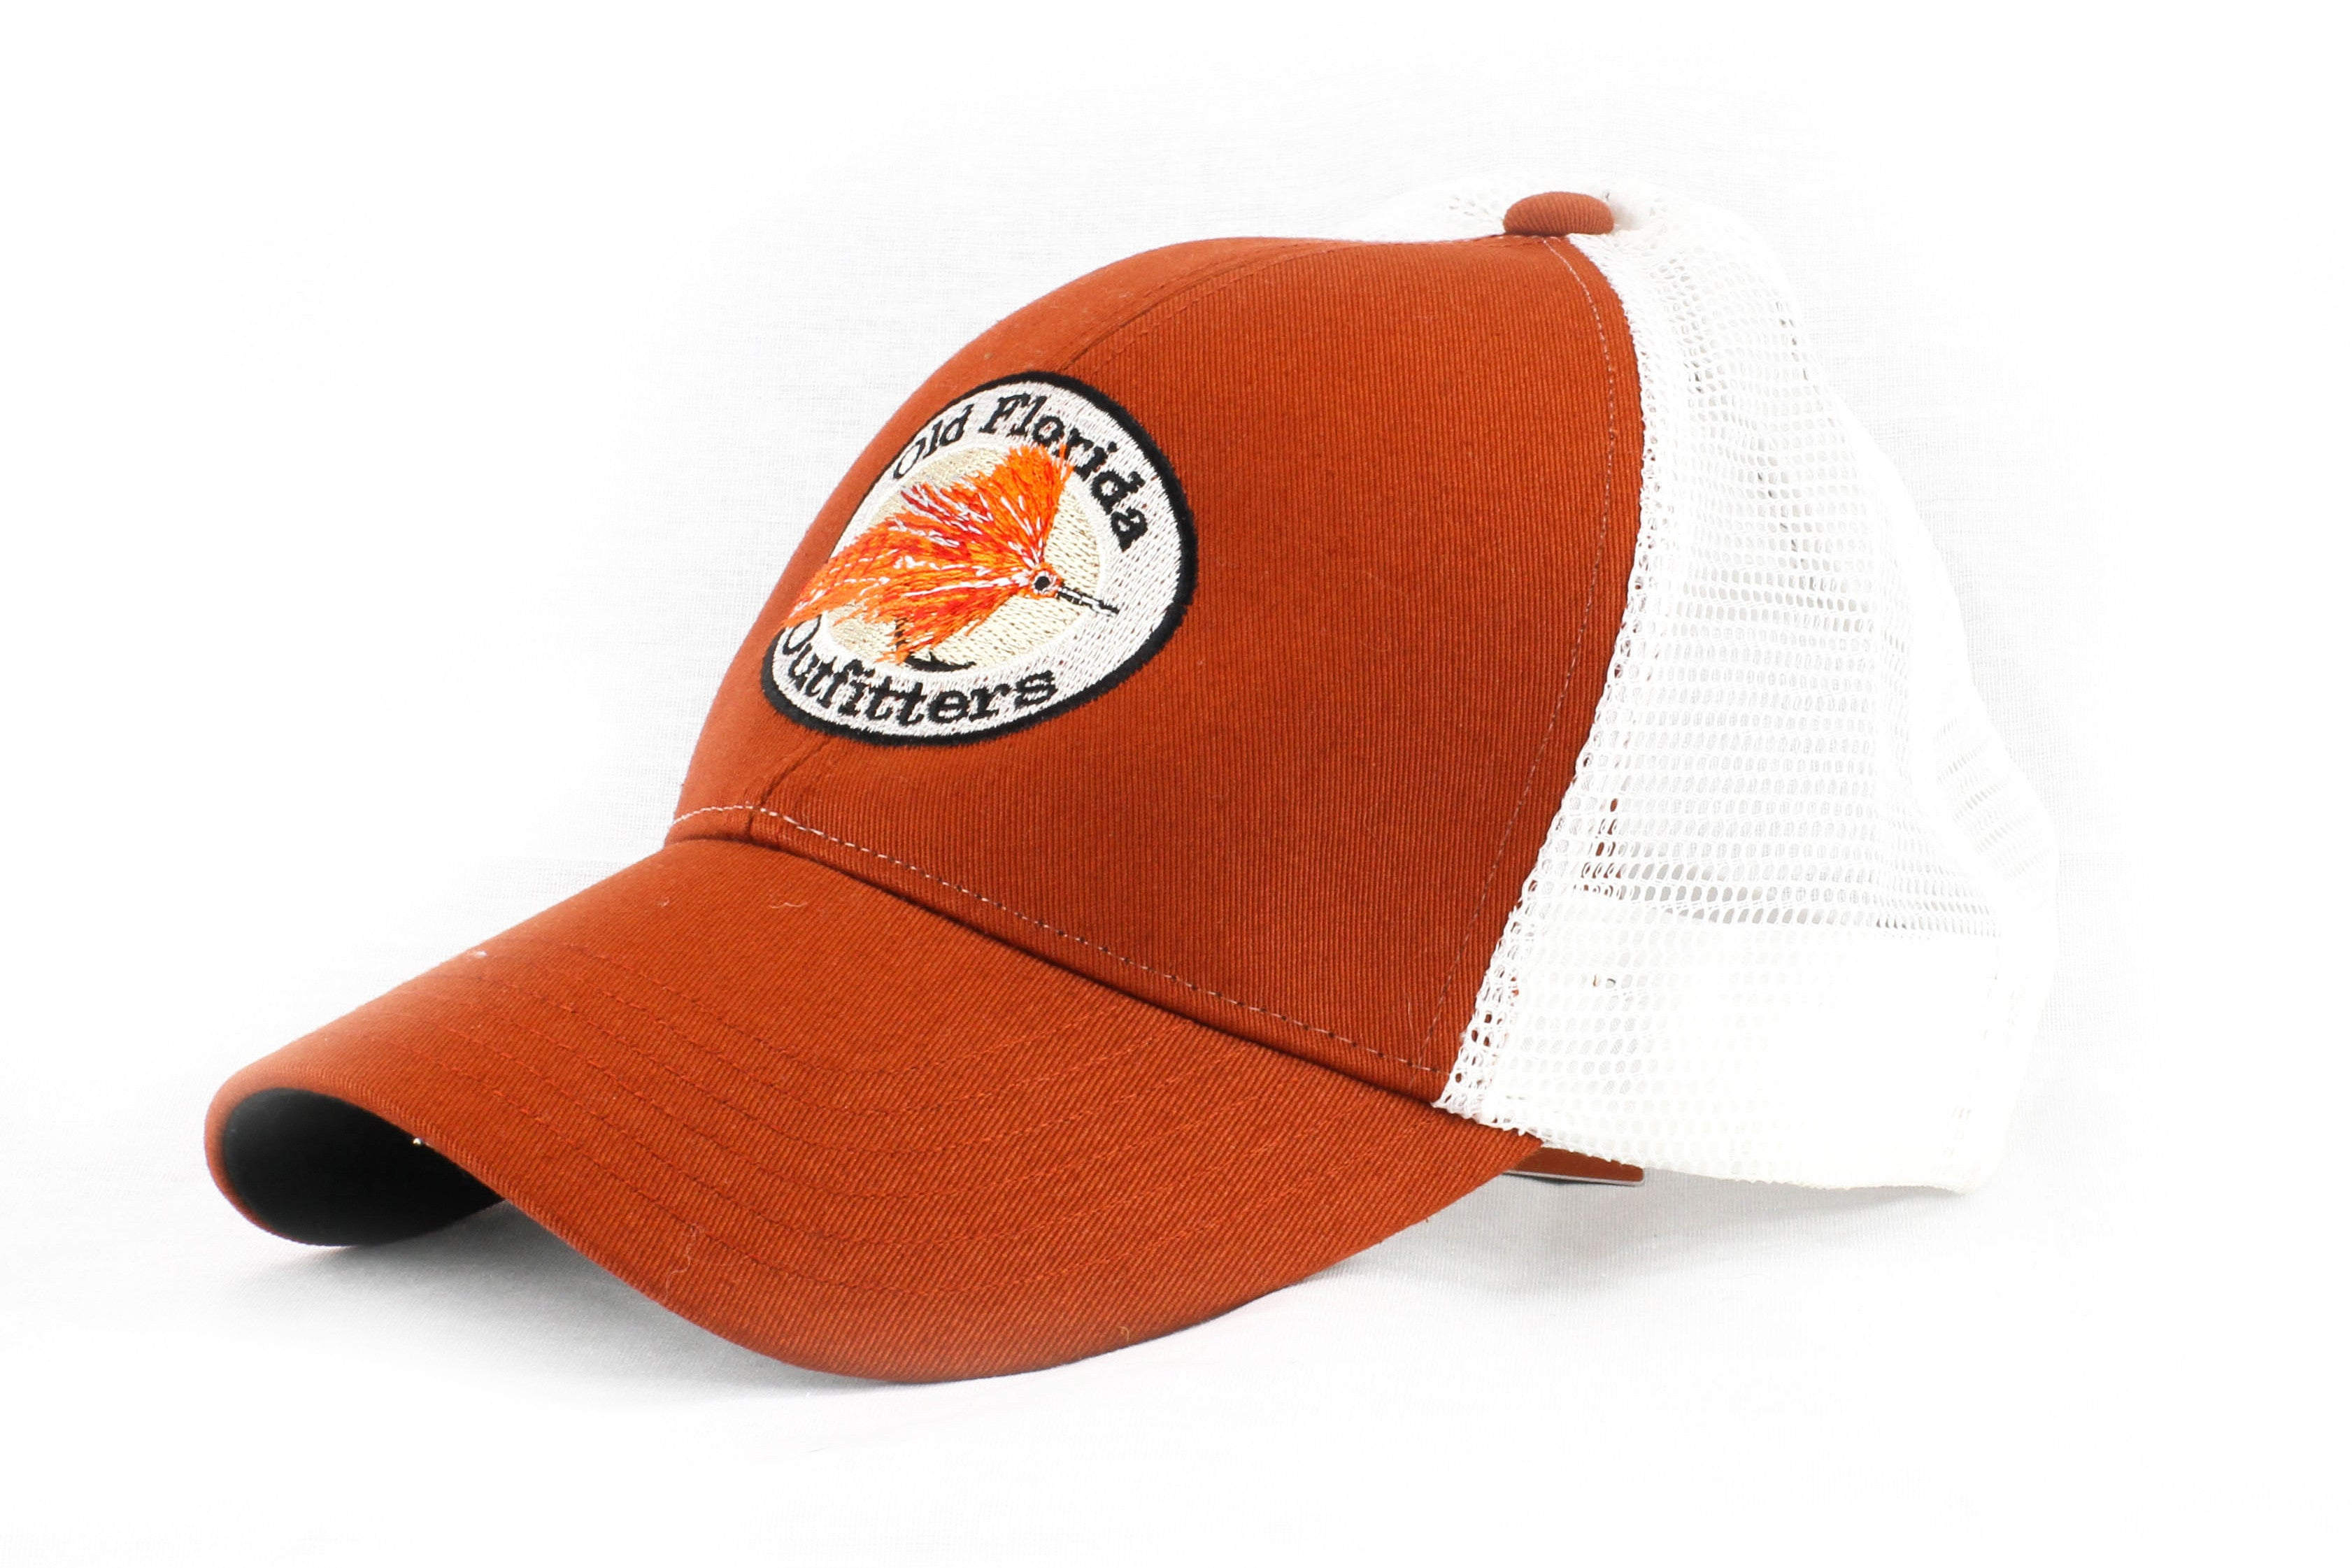 410266eac44 Simms Trucker OFO Logo Cap in Simms Orange - Old Florida Outfitters